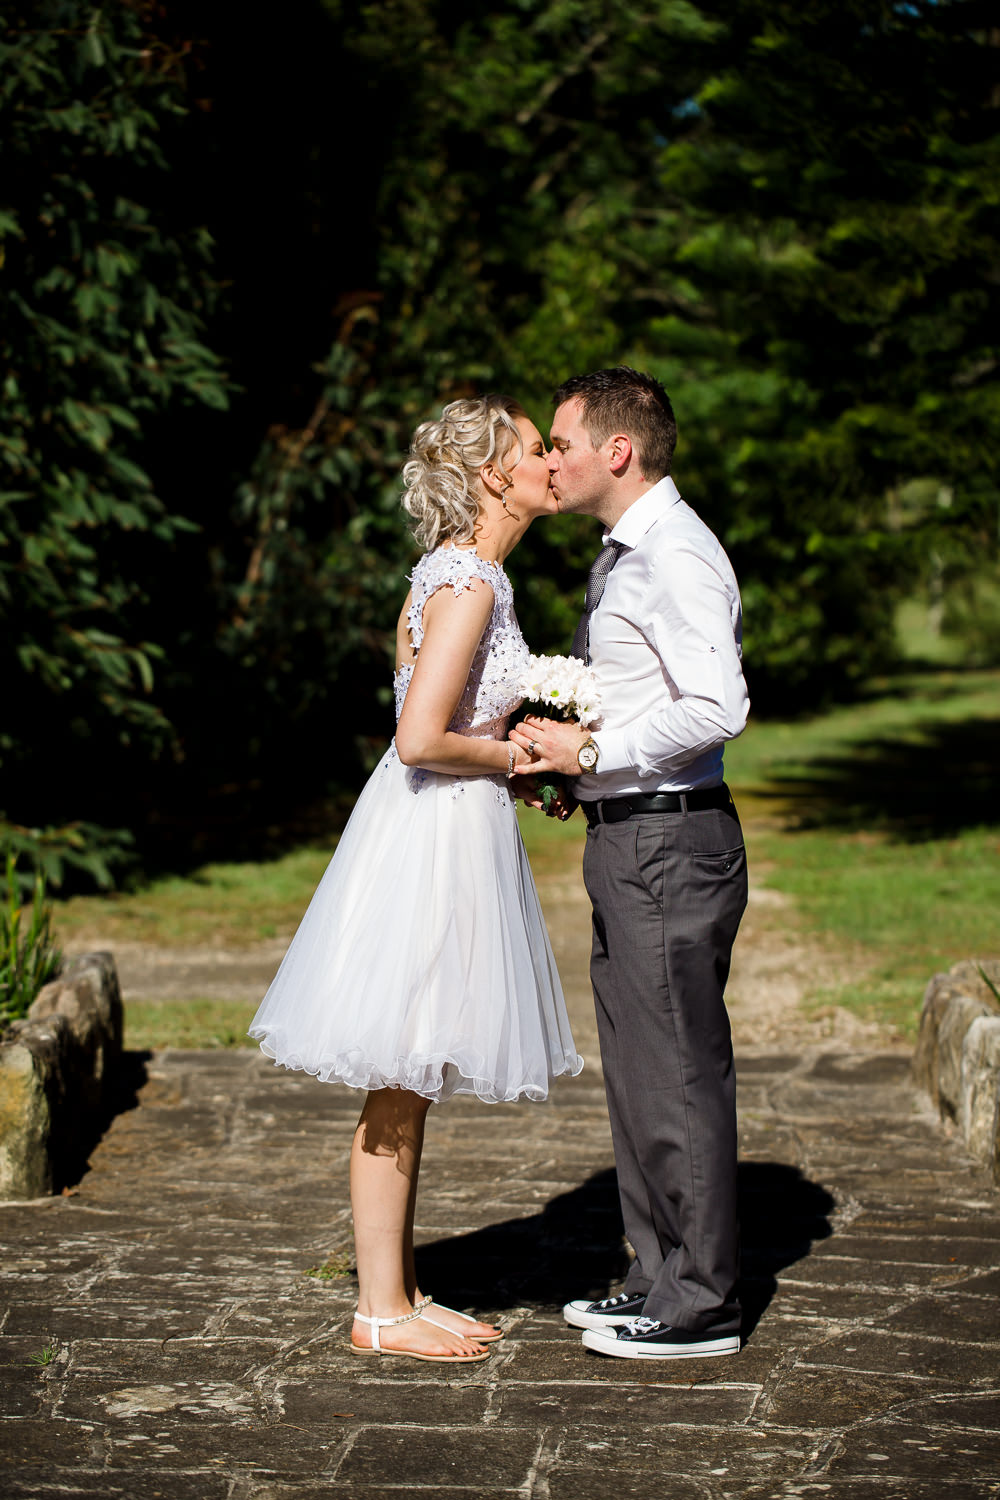 relaxed-wedding-non-traditional-wedding-gemma-clarke-phtography, relaxed australian-wedding